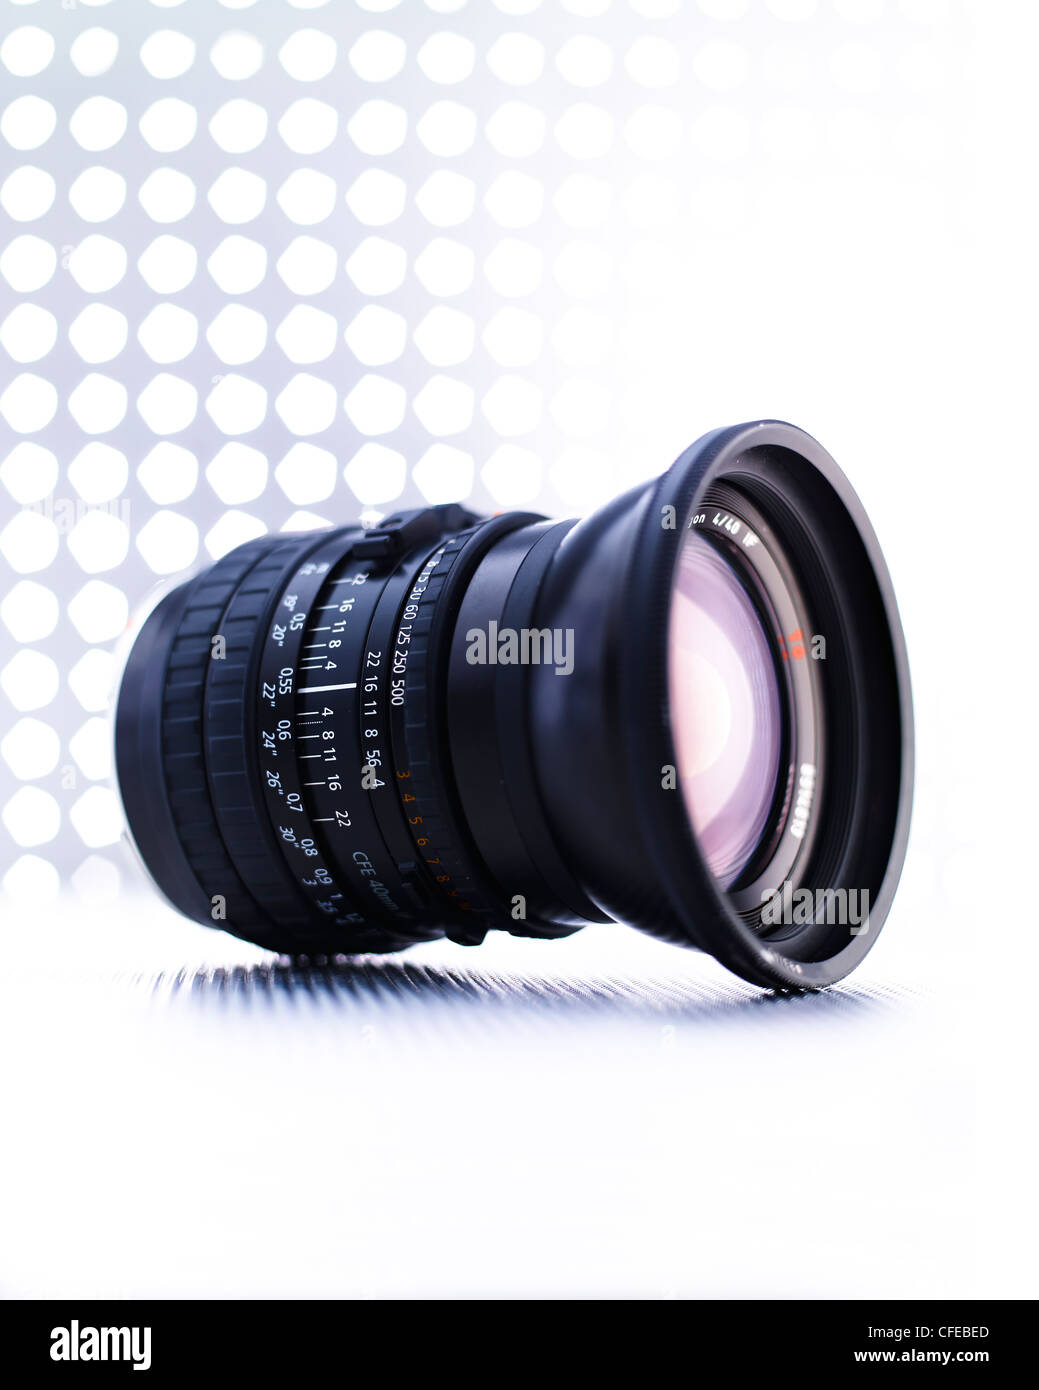 Medium format wide angle camera lens - Stock Image